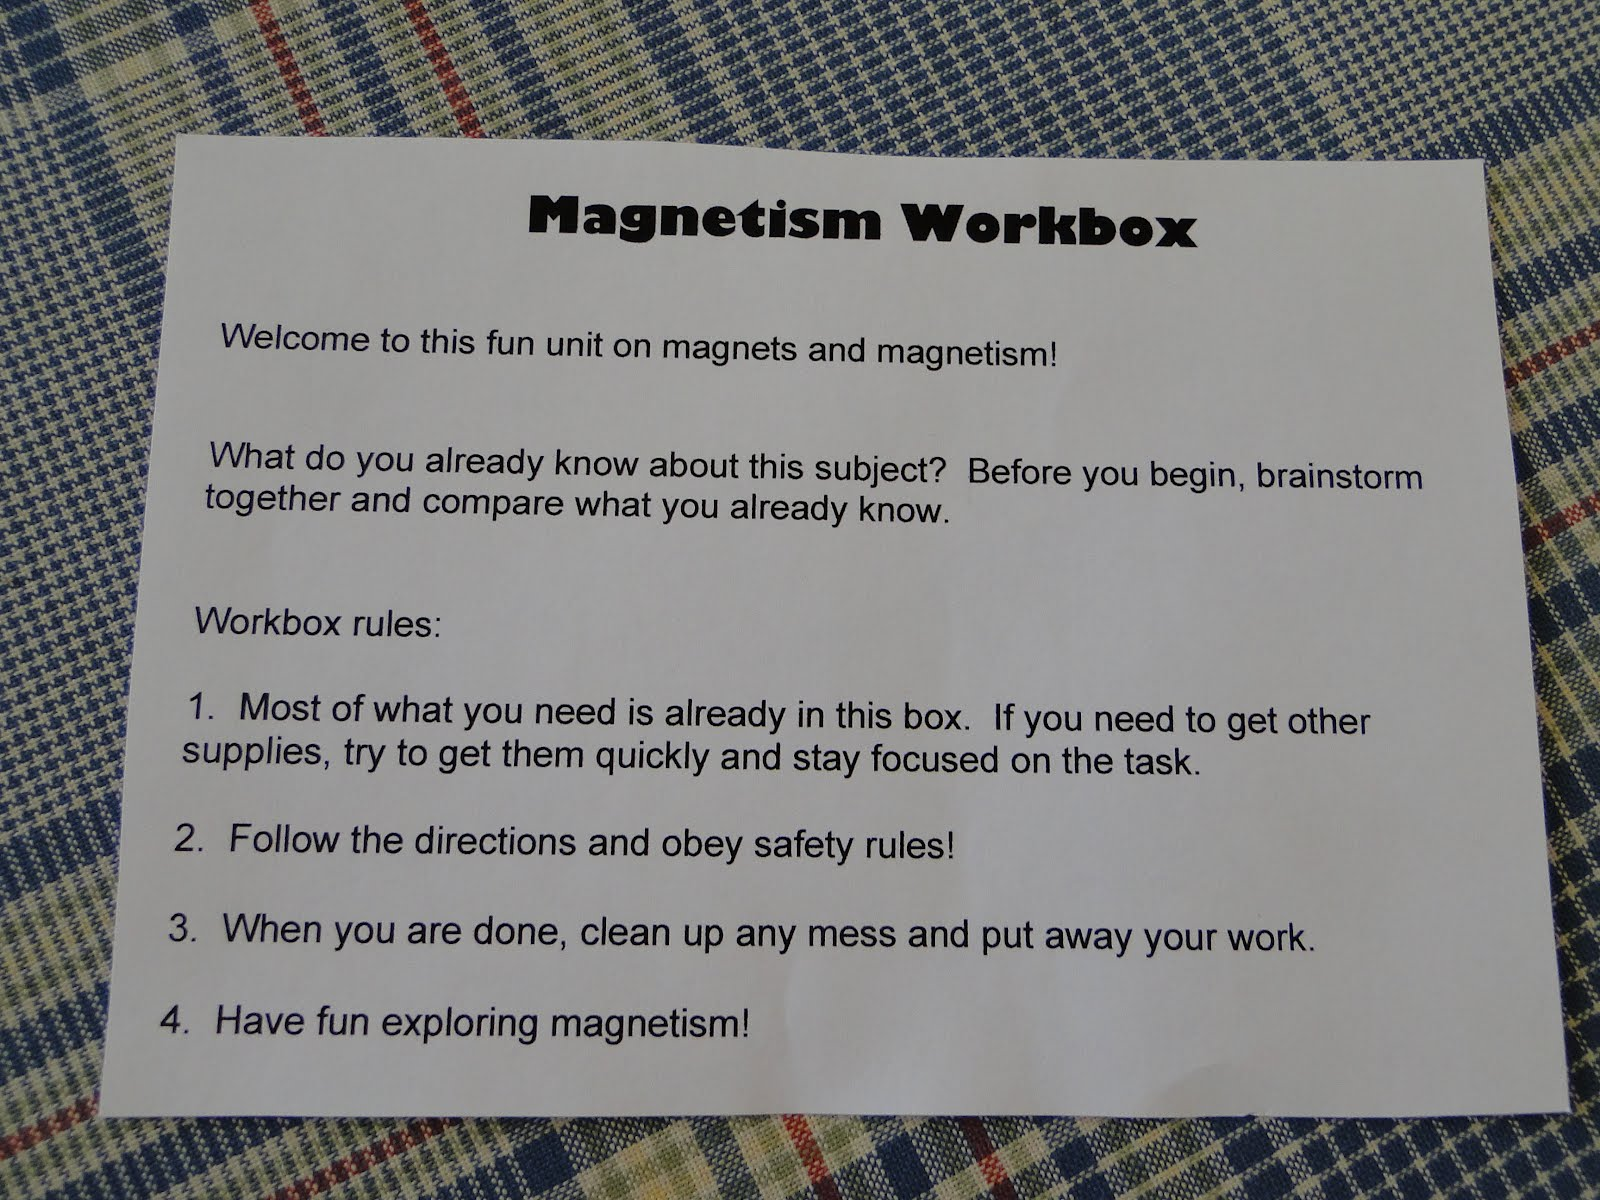 Karmamatopoeia Magnetism Workbox